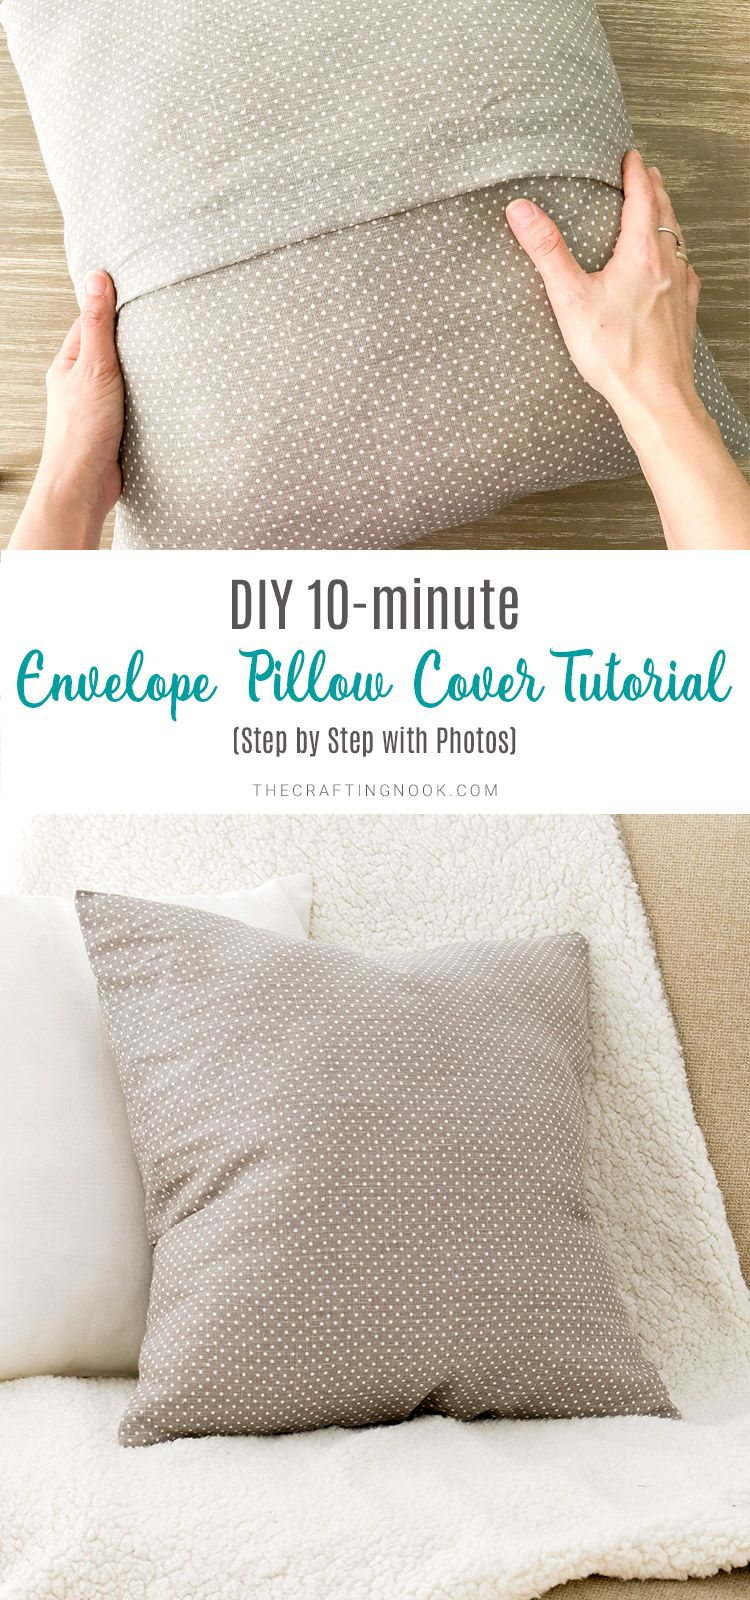 List of Top DIY Pillows from thecraftingnook.com